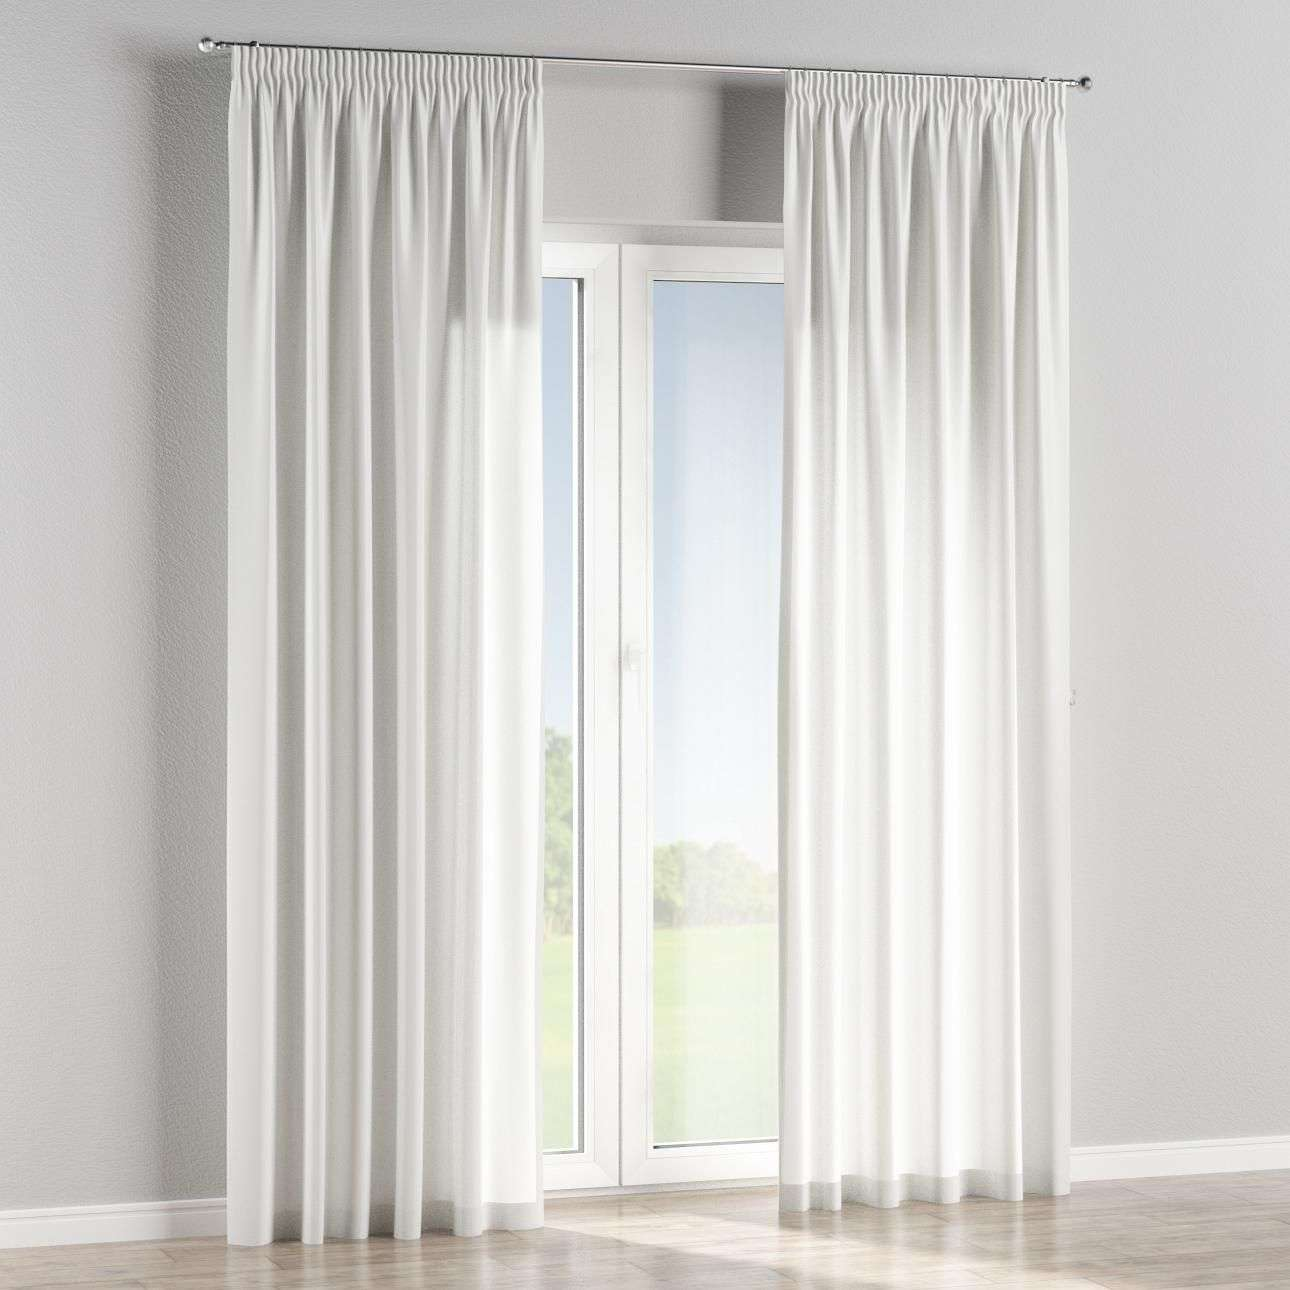 Pencil pleat curtains in collection SALE, fabric: 114-92